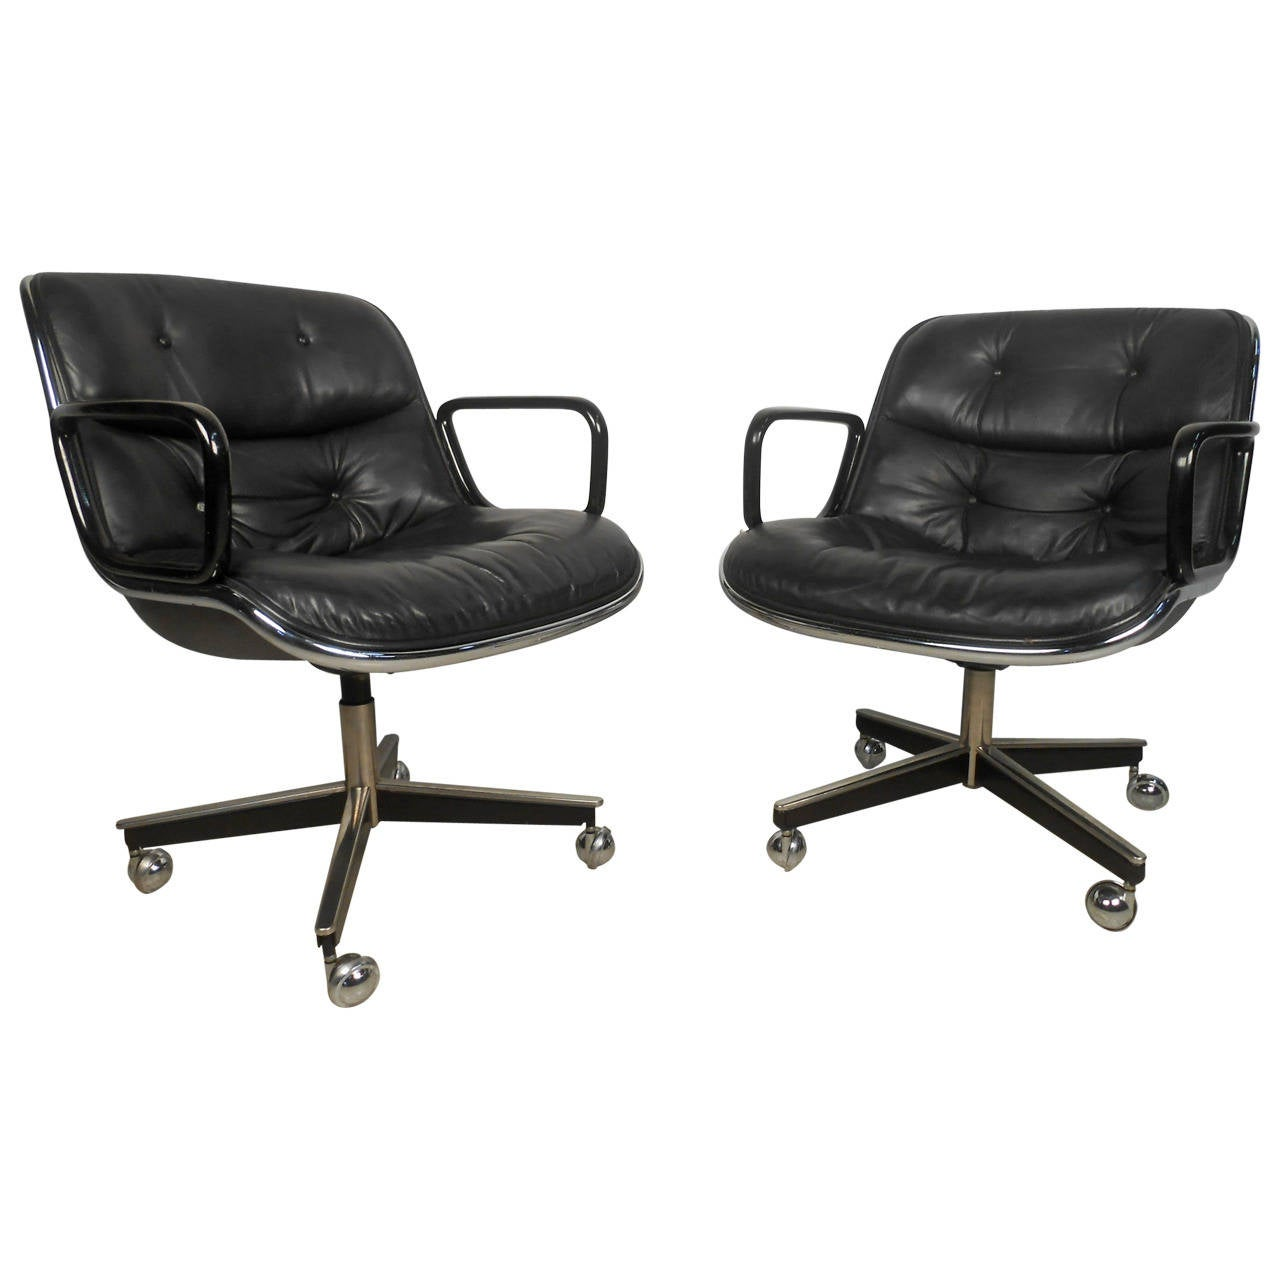 Knoll Executive Chair For Sale